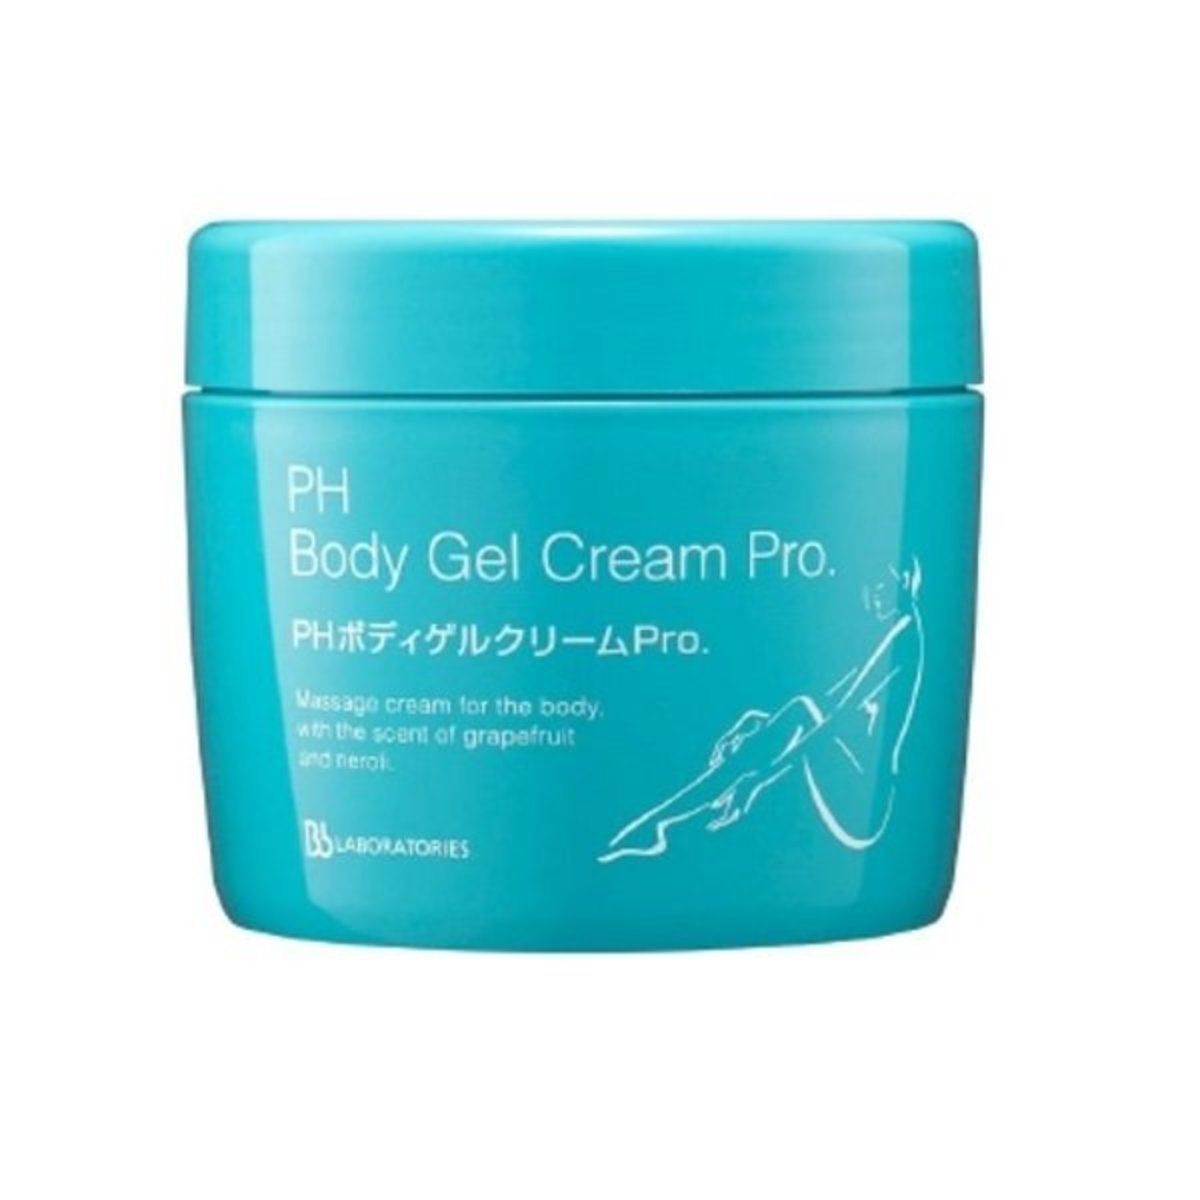 PH Body Gel Cream Pro 270G  [Parallel Import Product]